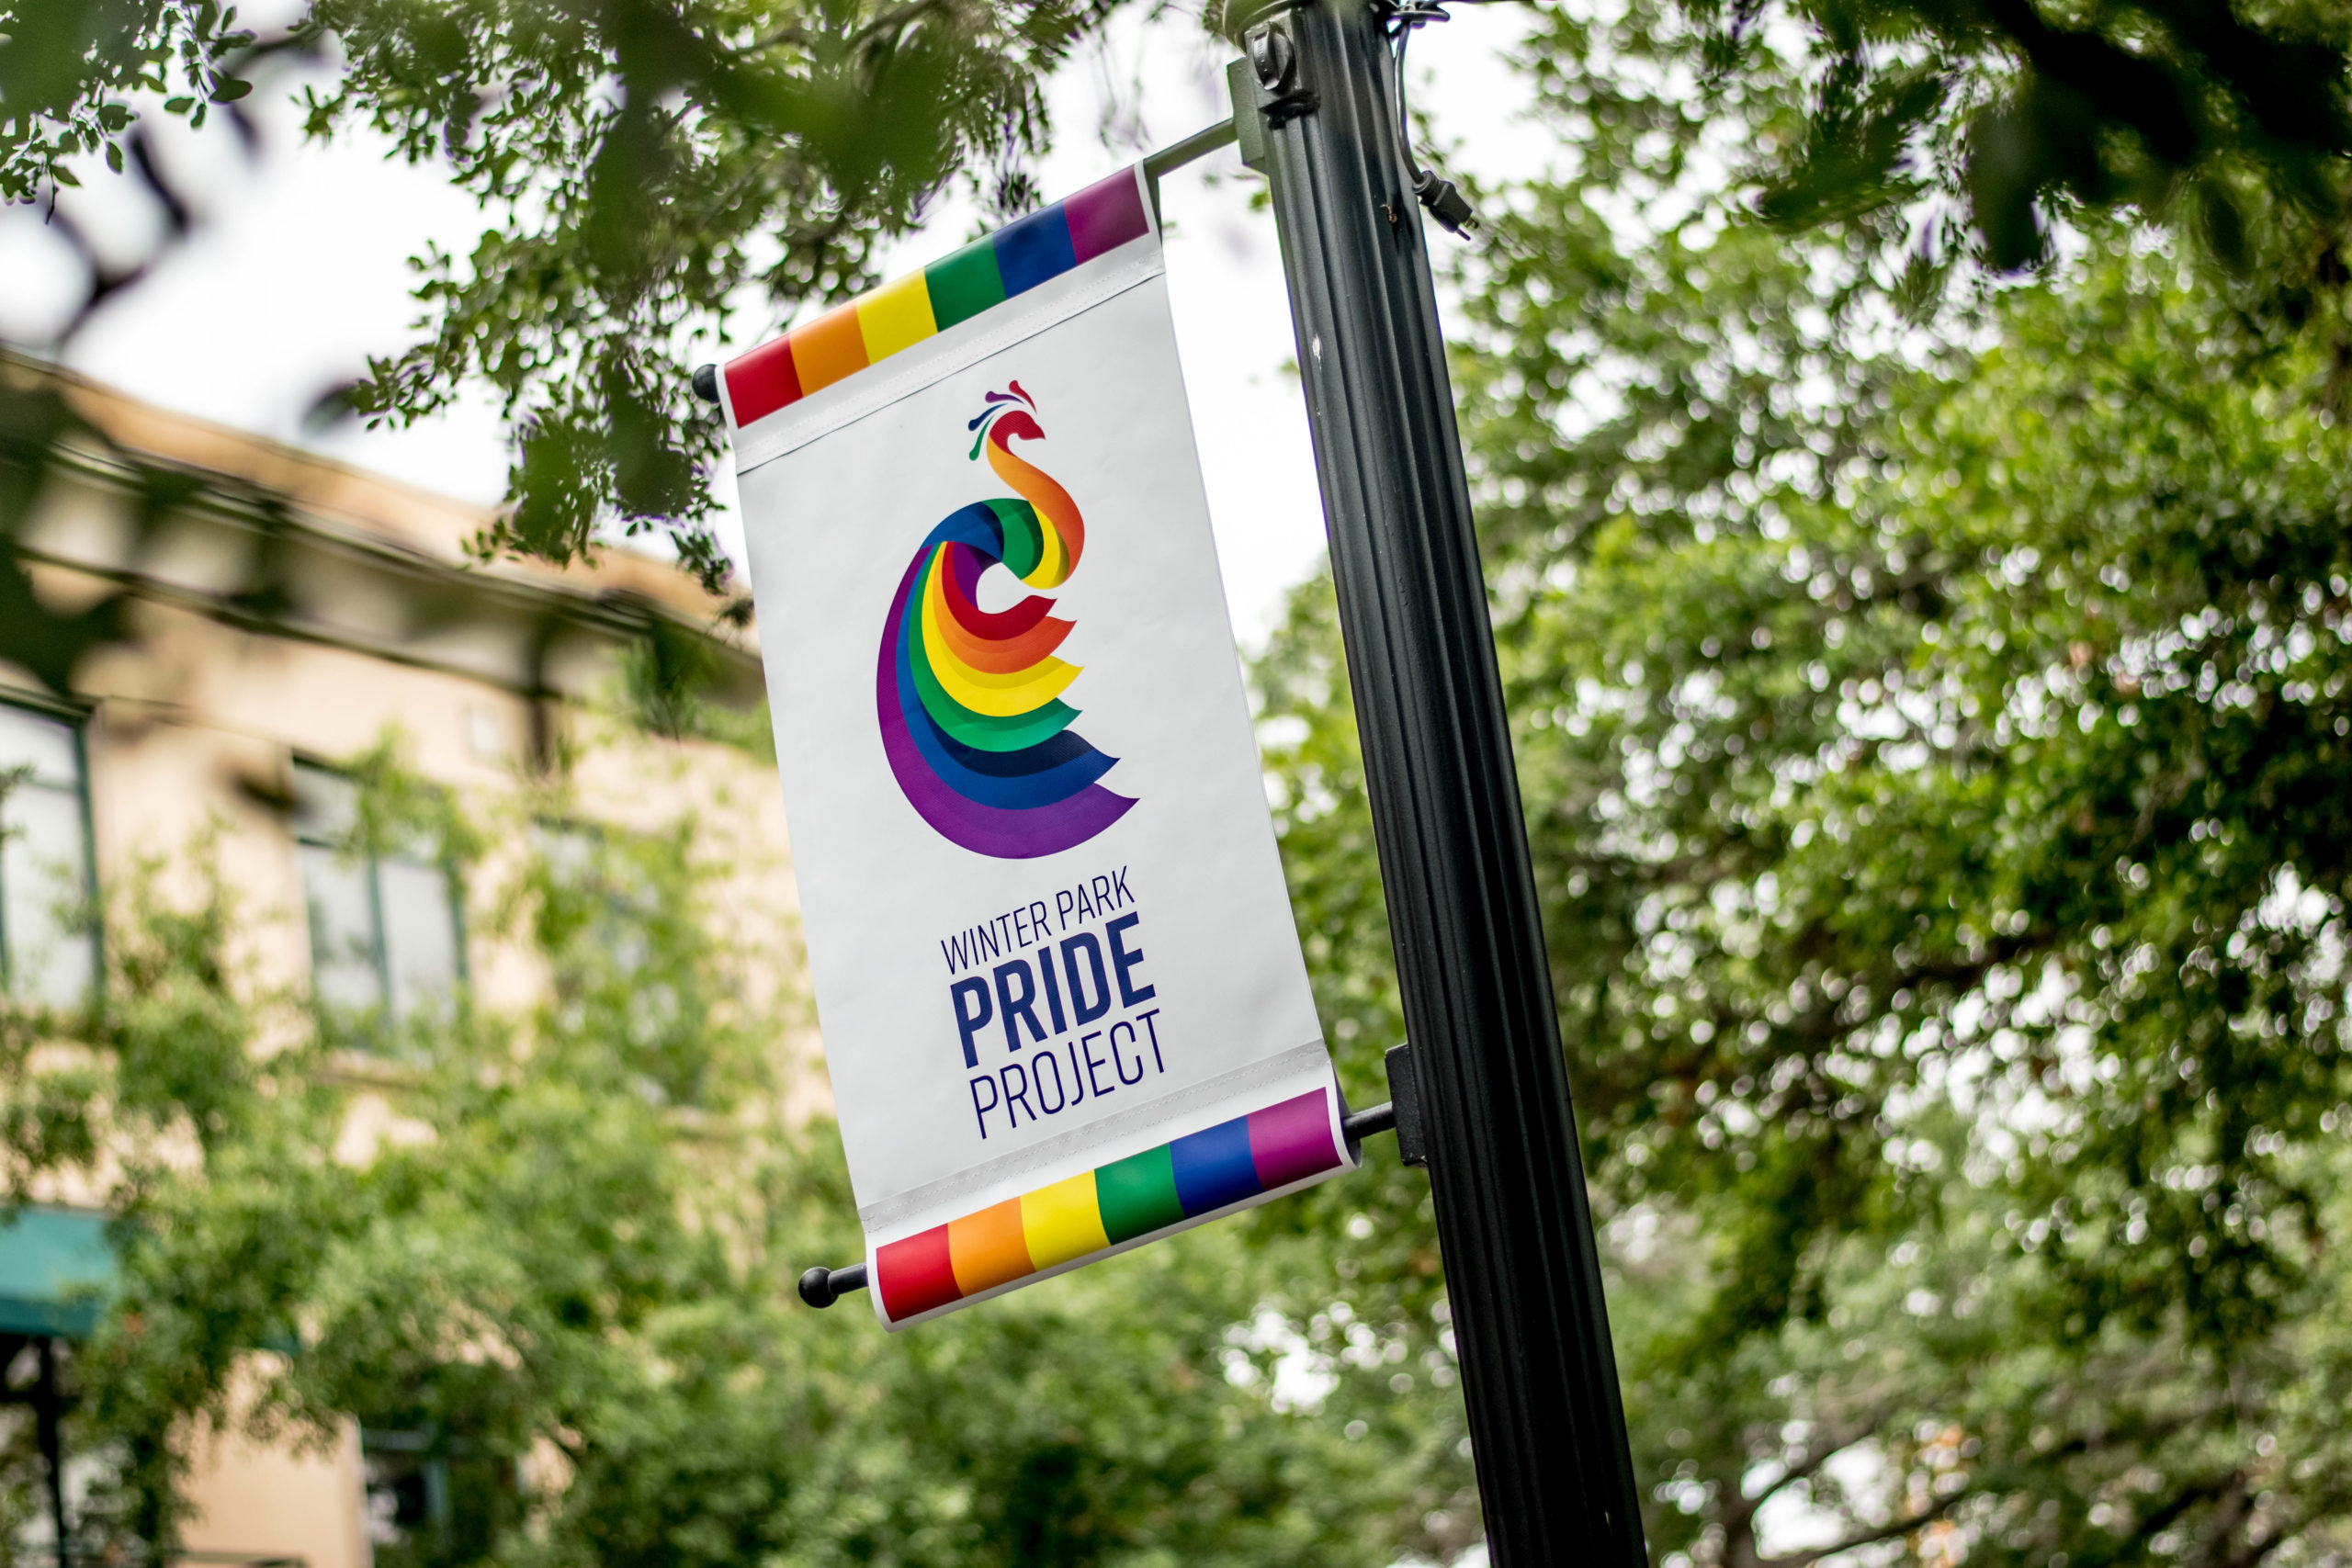 A flag pole shows a Winter Park Pride flag hanging with rainbows in front of green trees.